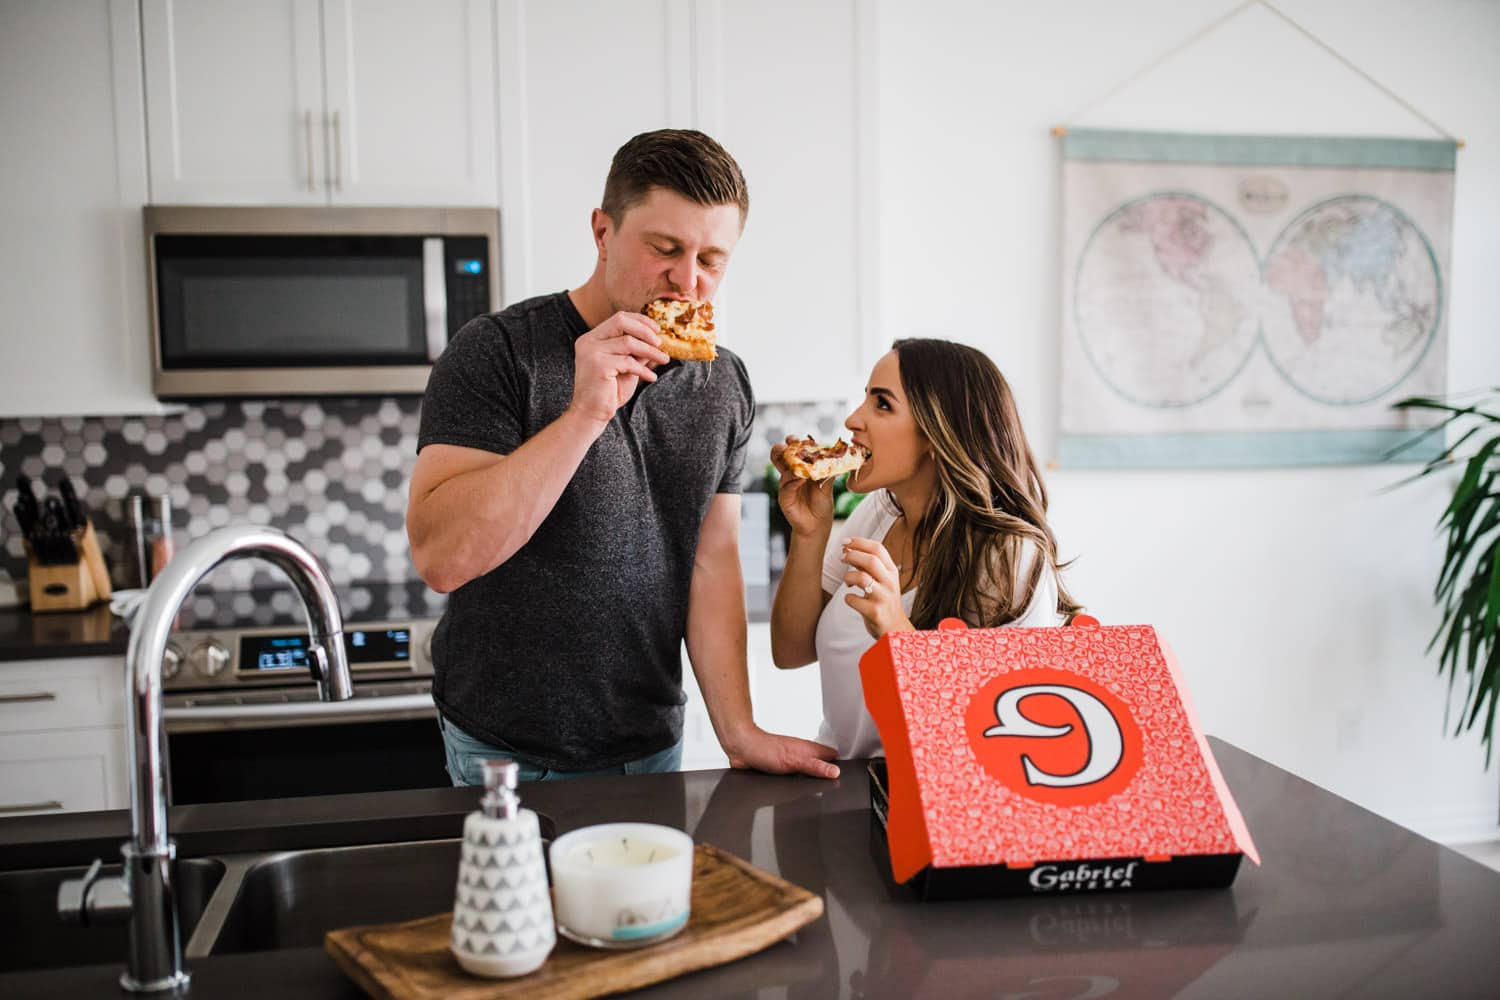 couple eat pizza in kitchen together - ottawa in home engagement